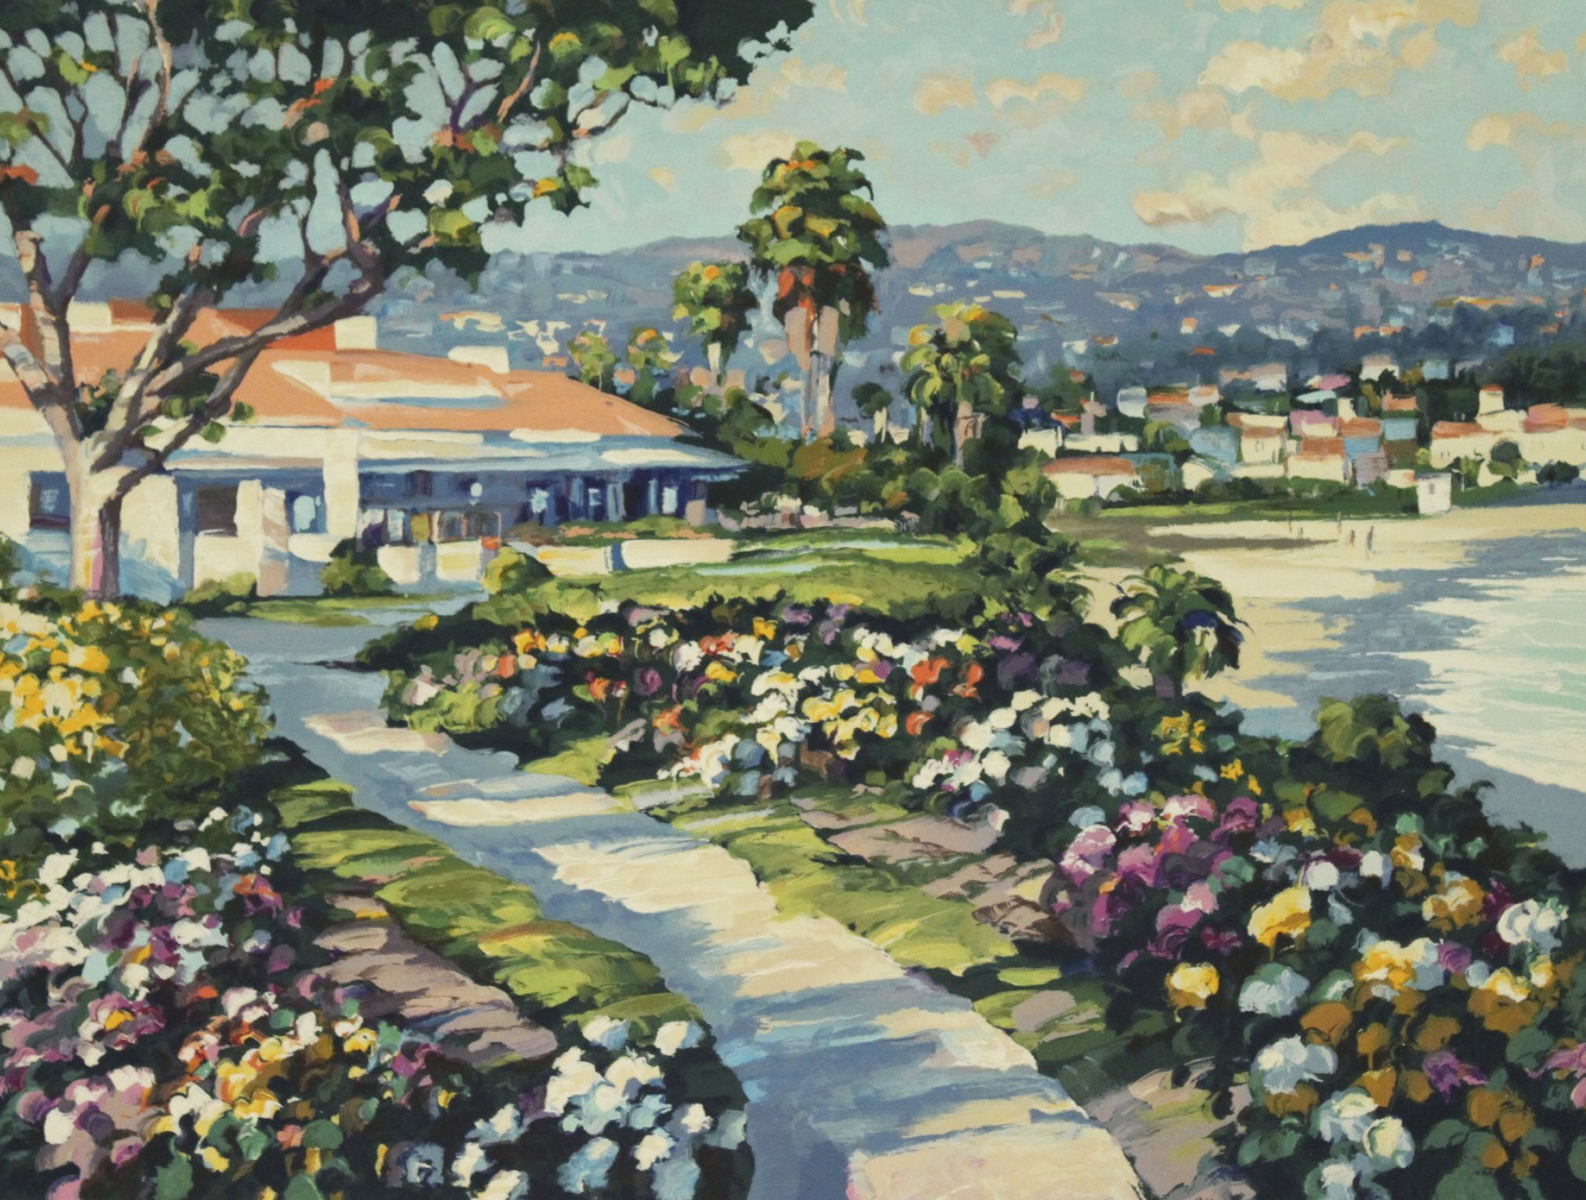 Grove Street and Las Brisas, Laguna Beach, Suite of 2 Prints 1994